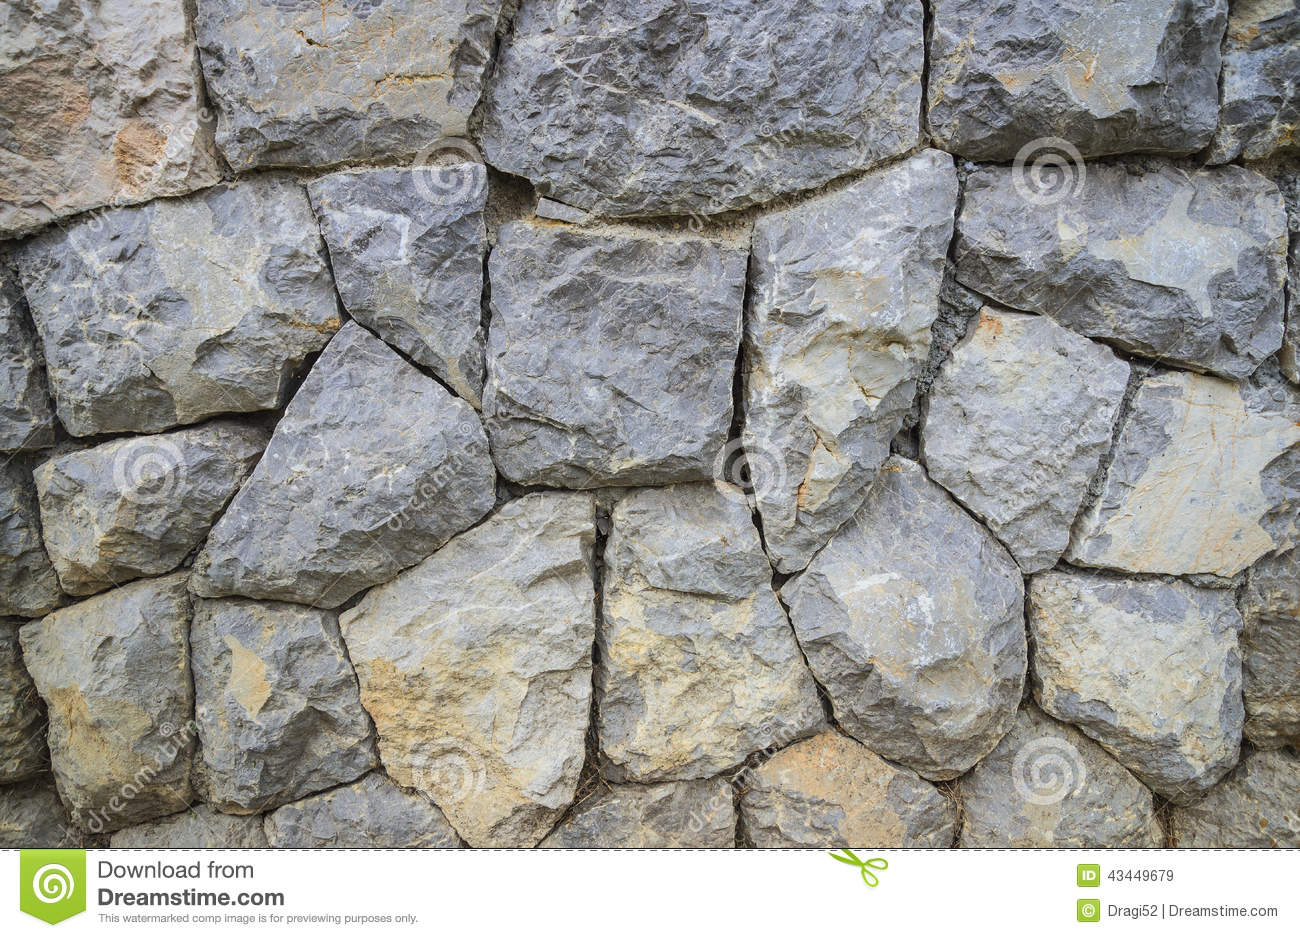 Large White Granite Rock : Large stone wall texture and background stock photo